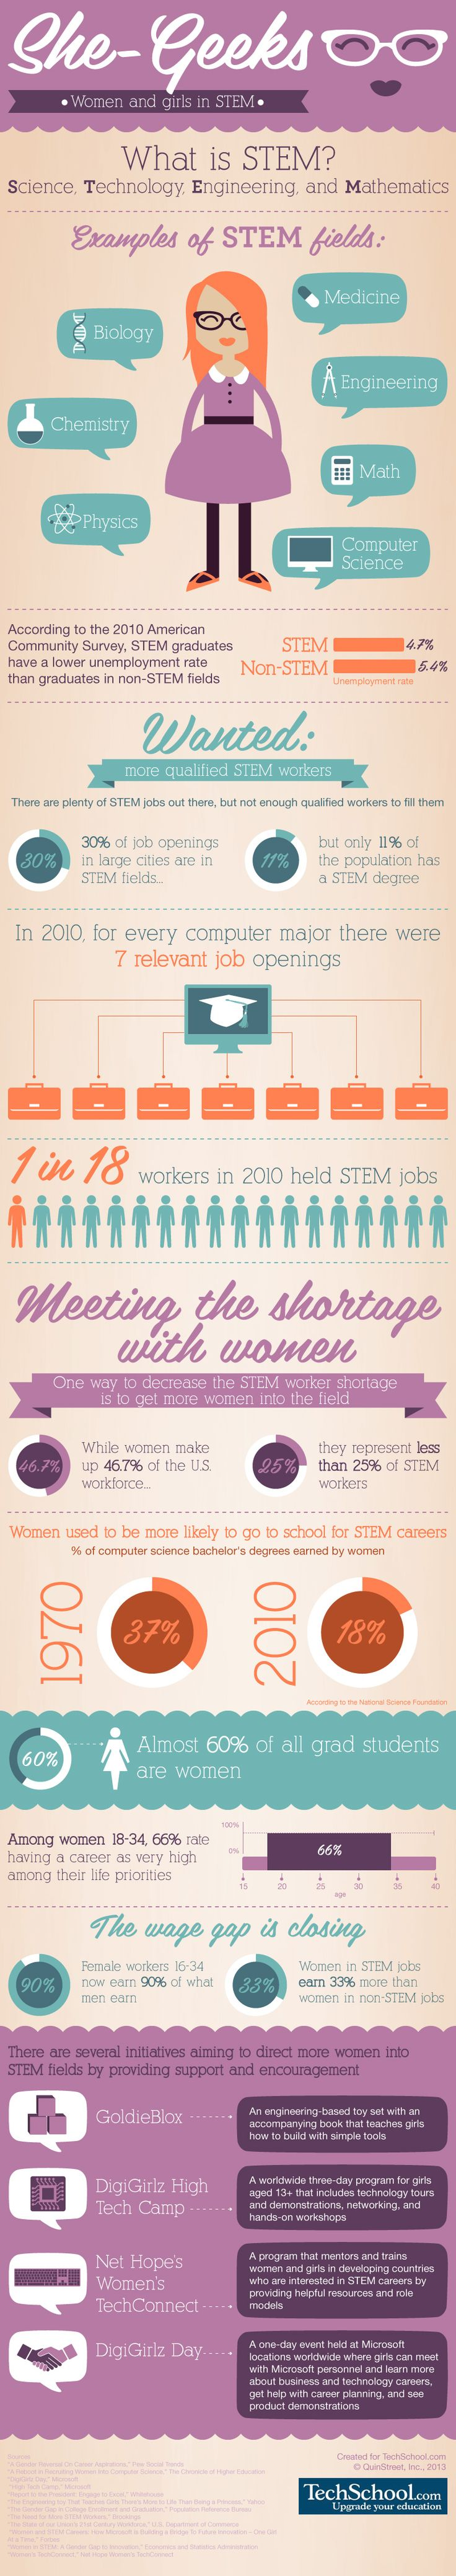 Women and Girls in STEM (Science, Technology, Engineering, & Math) - Examples of STEM fields & More Infographic